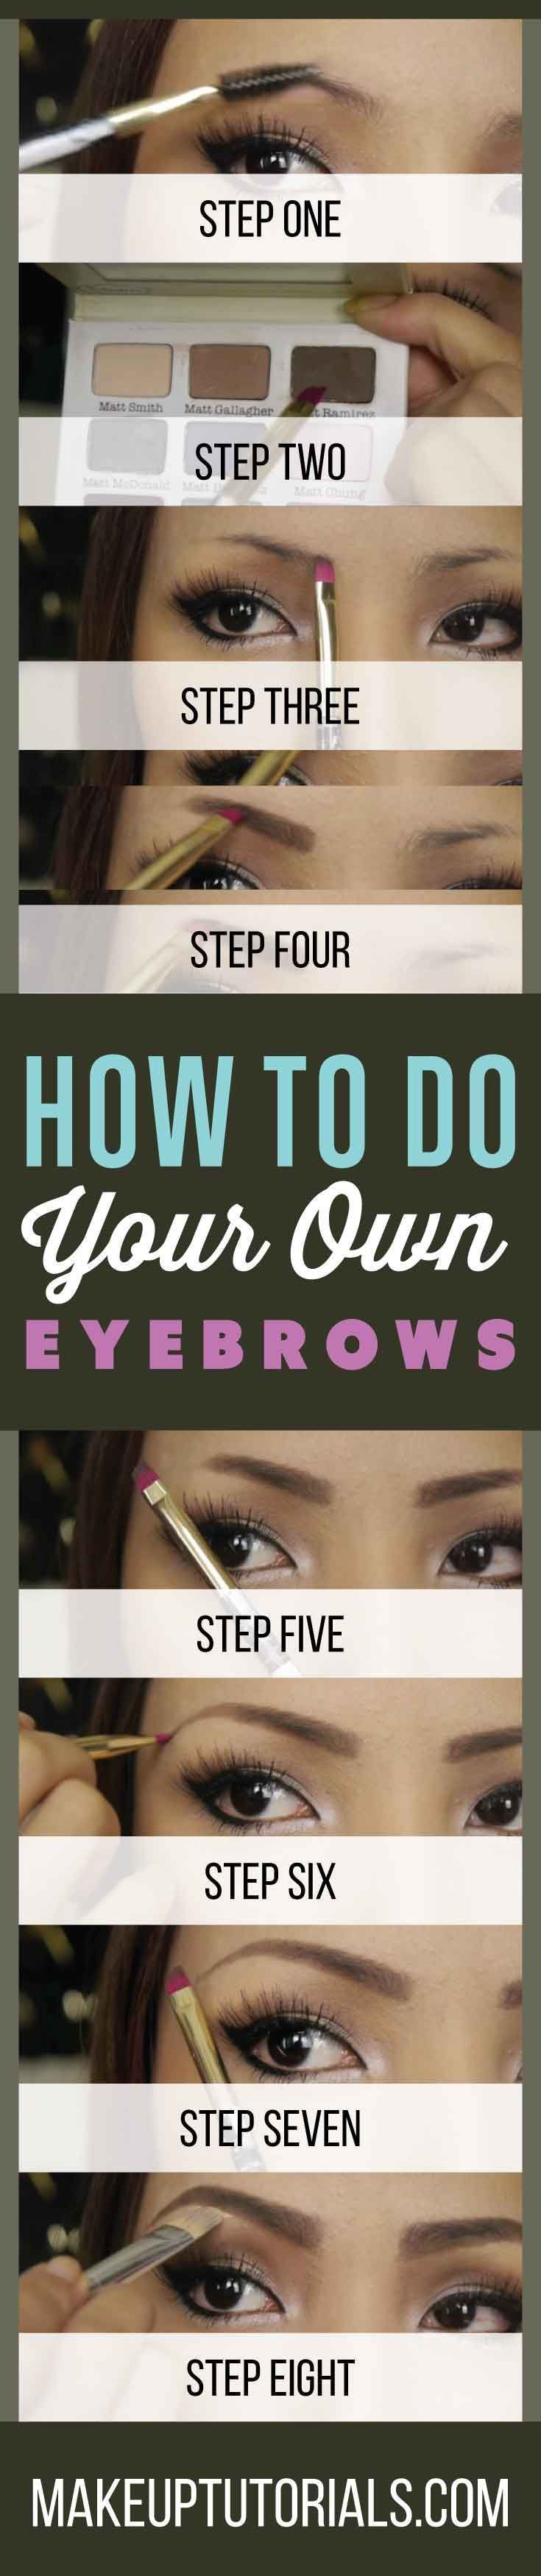 How To Do Your Own Eyebrows Like A Pro